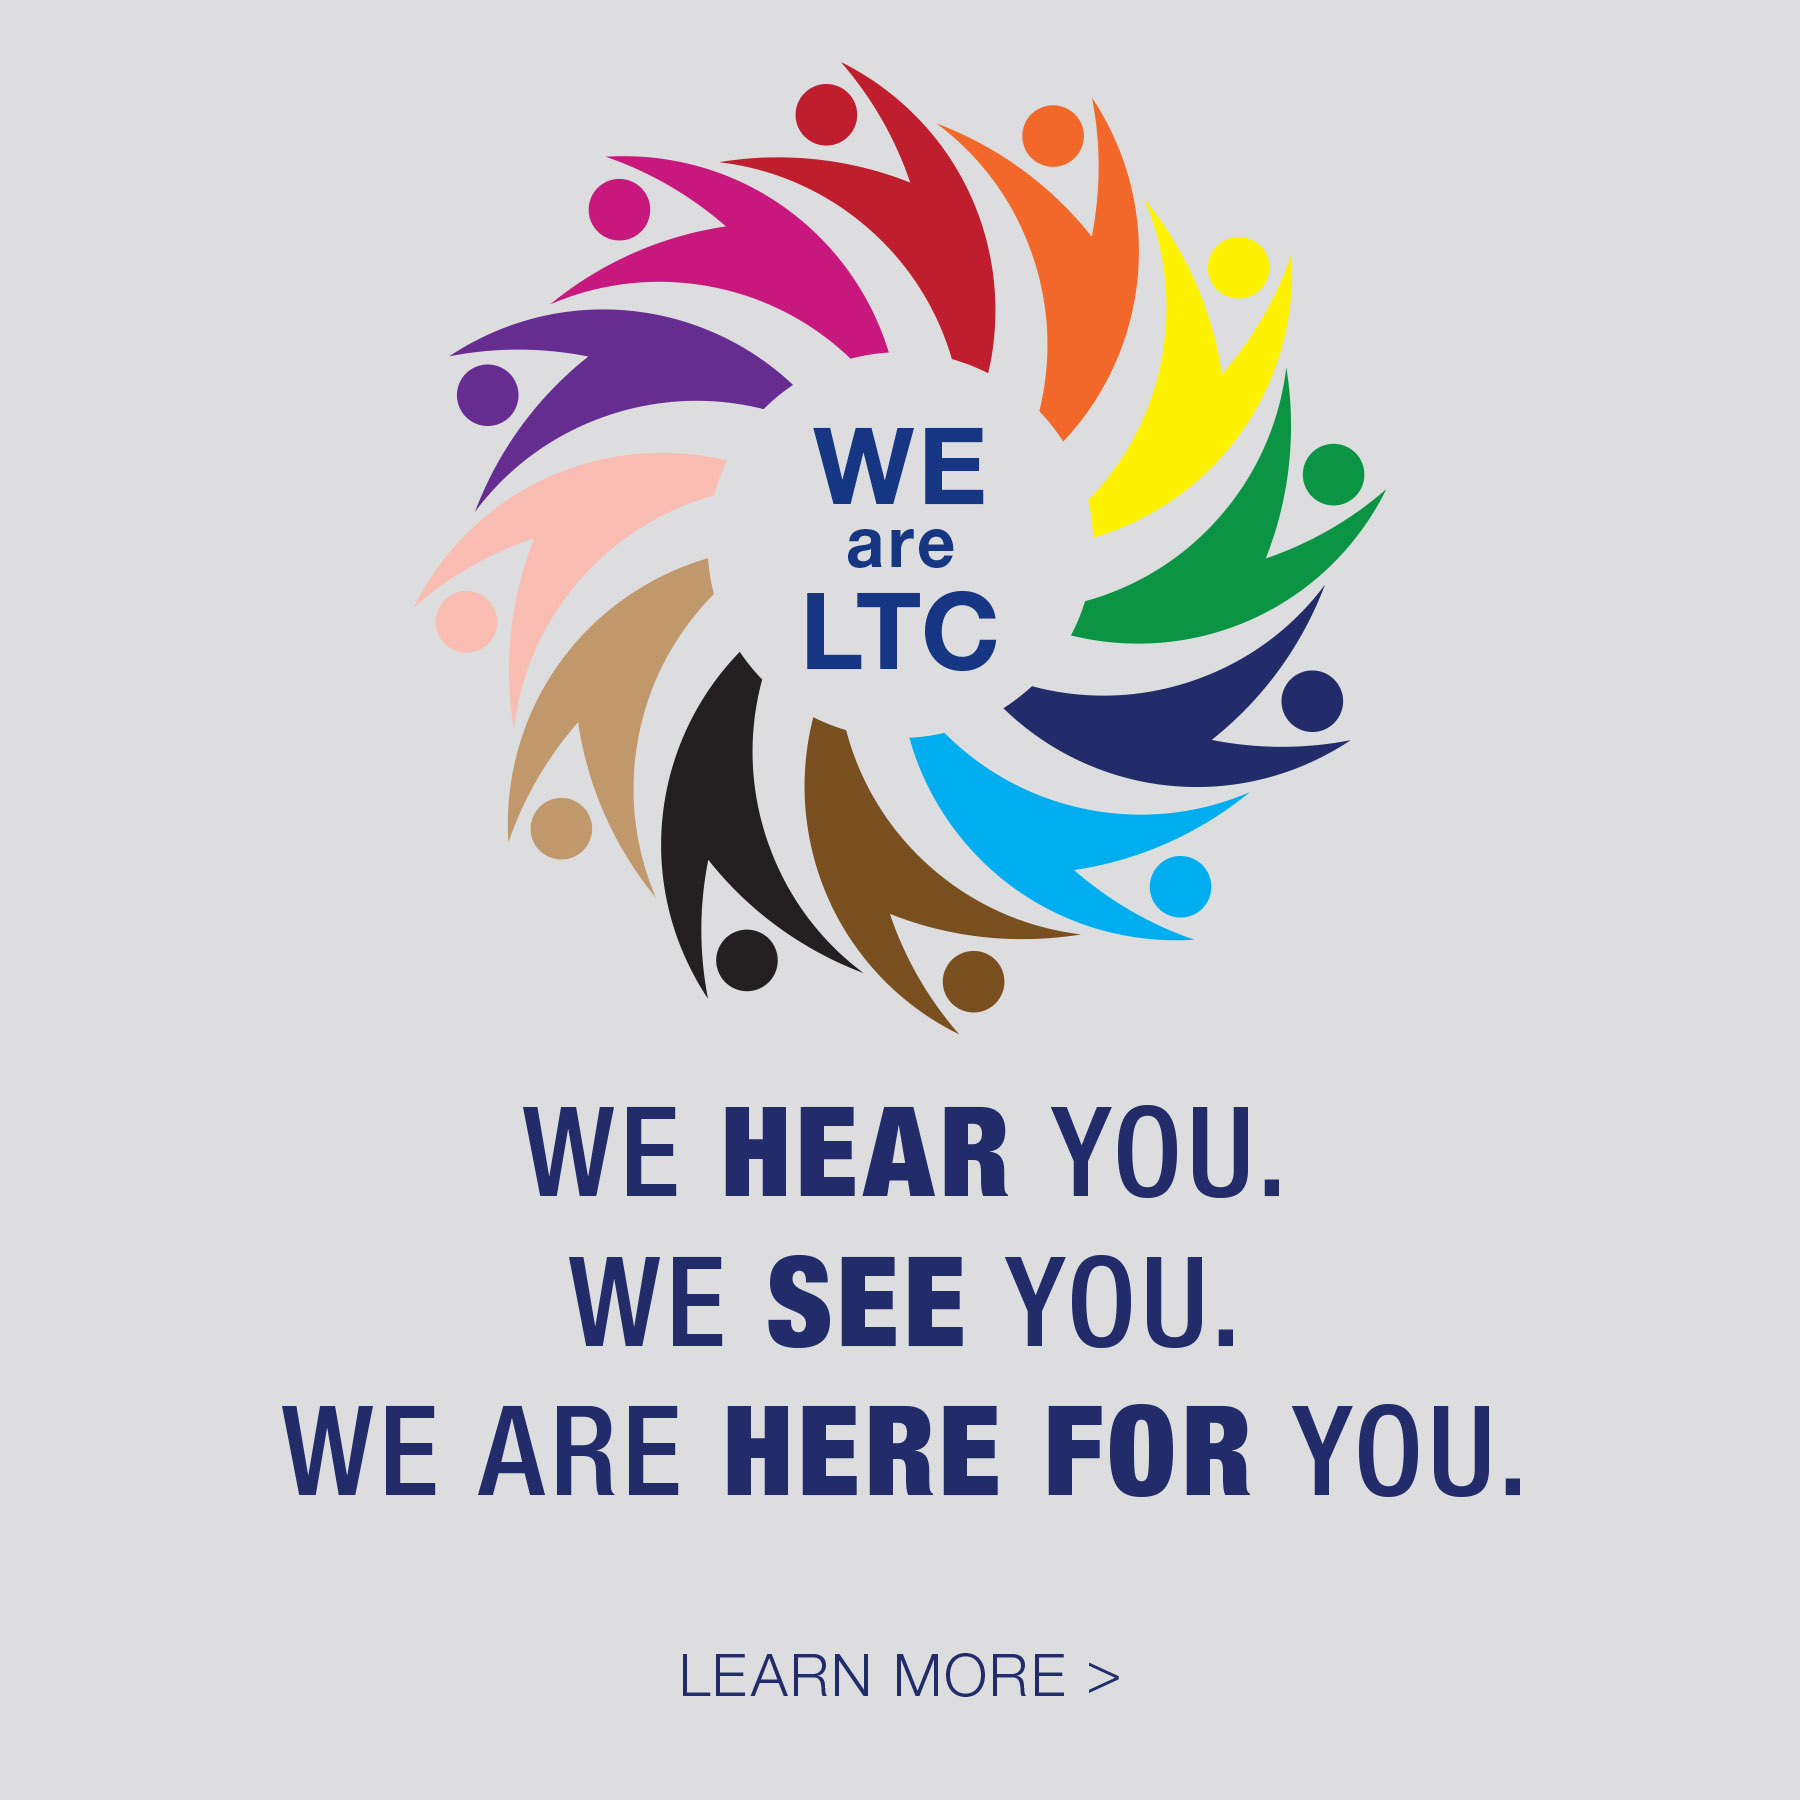 We are LTC: We SEE you, We HEAR you, We are HERE FOR YOU